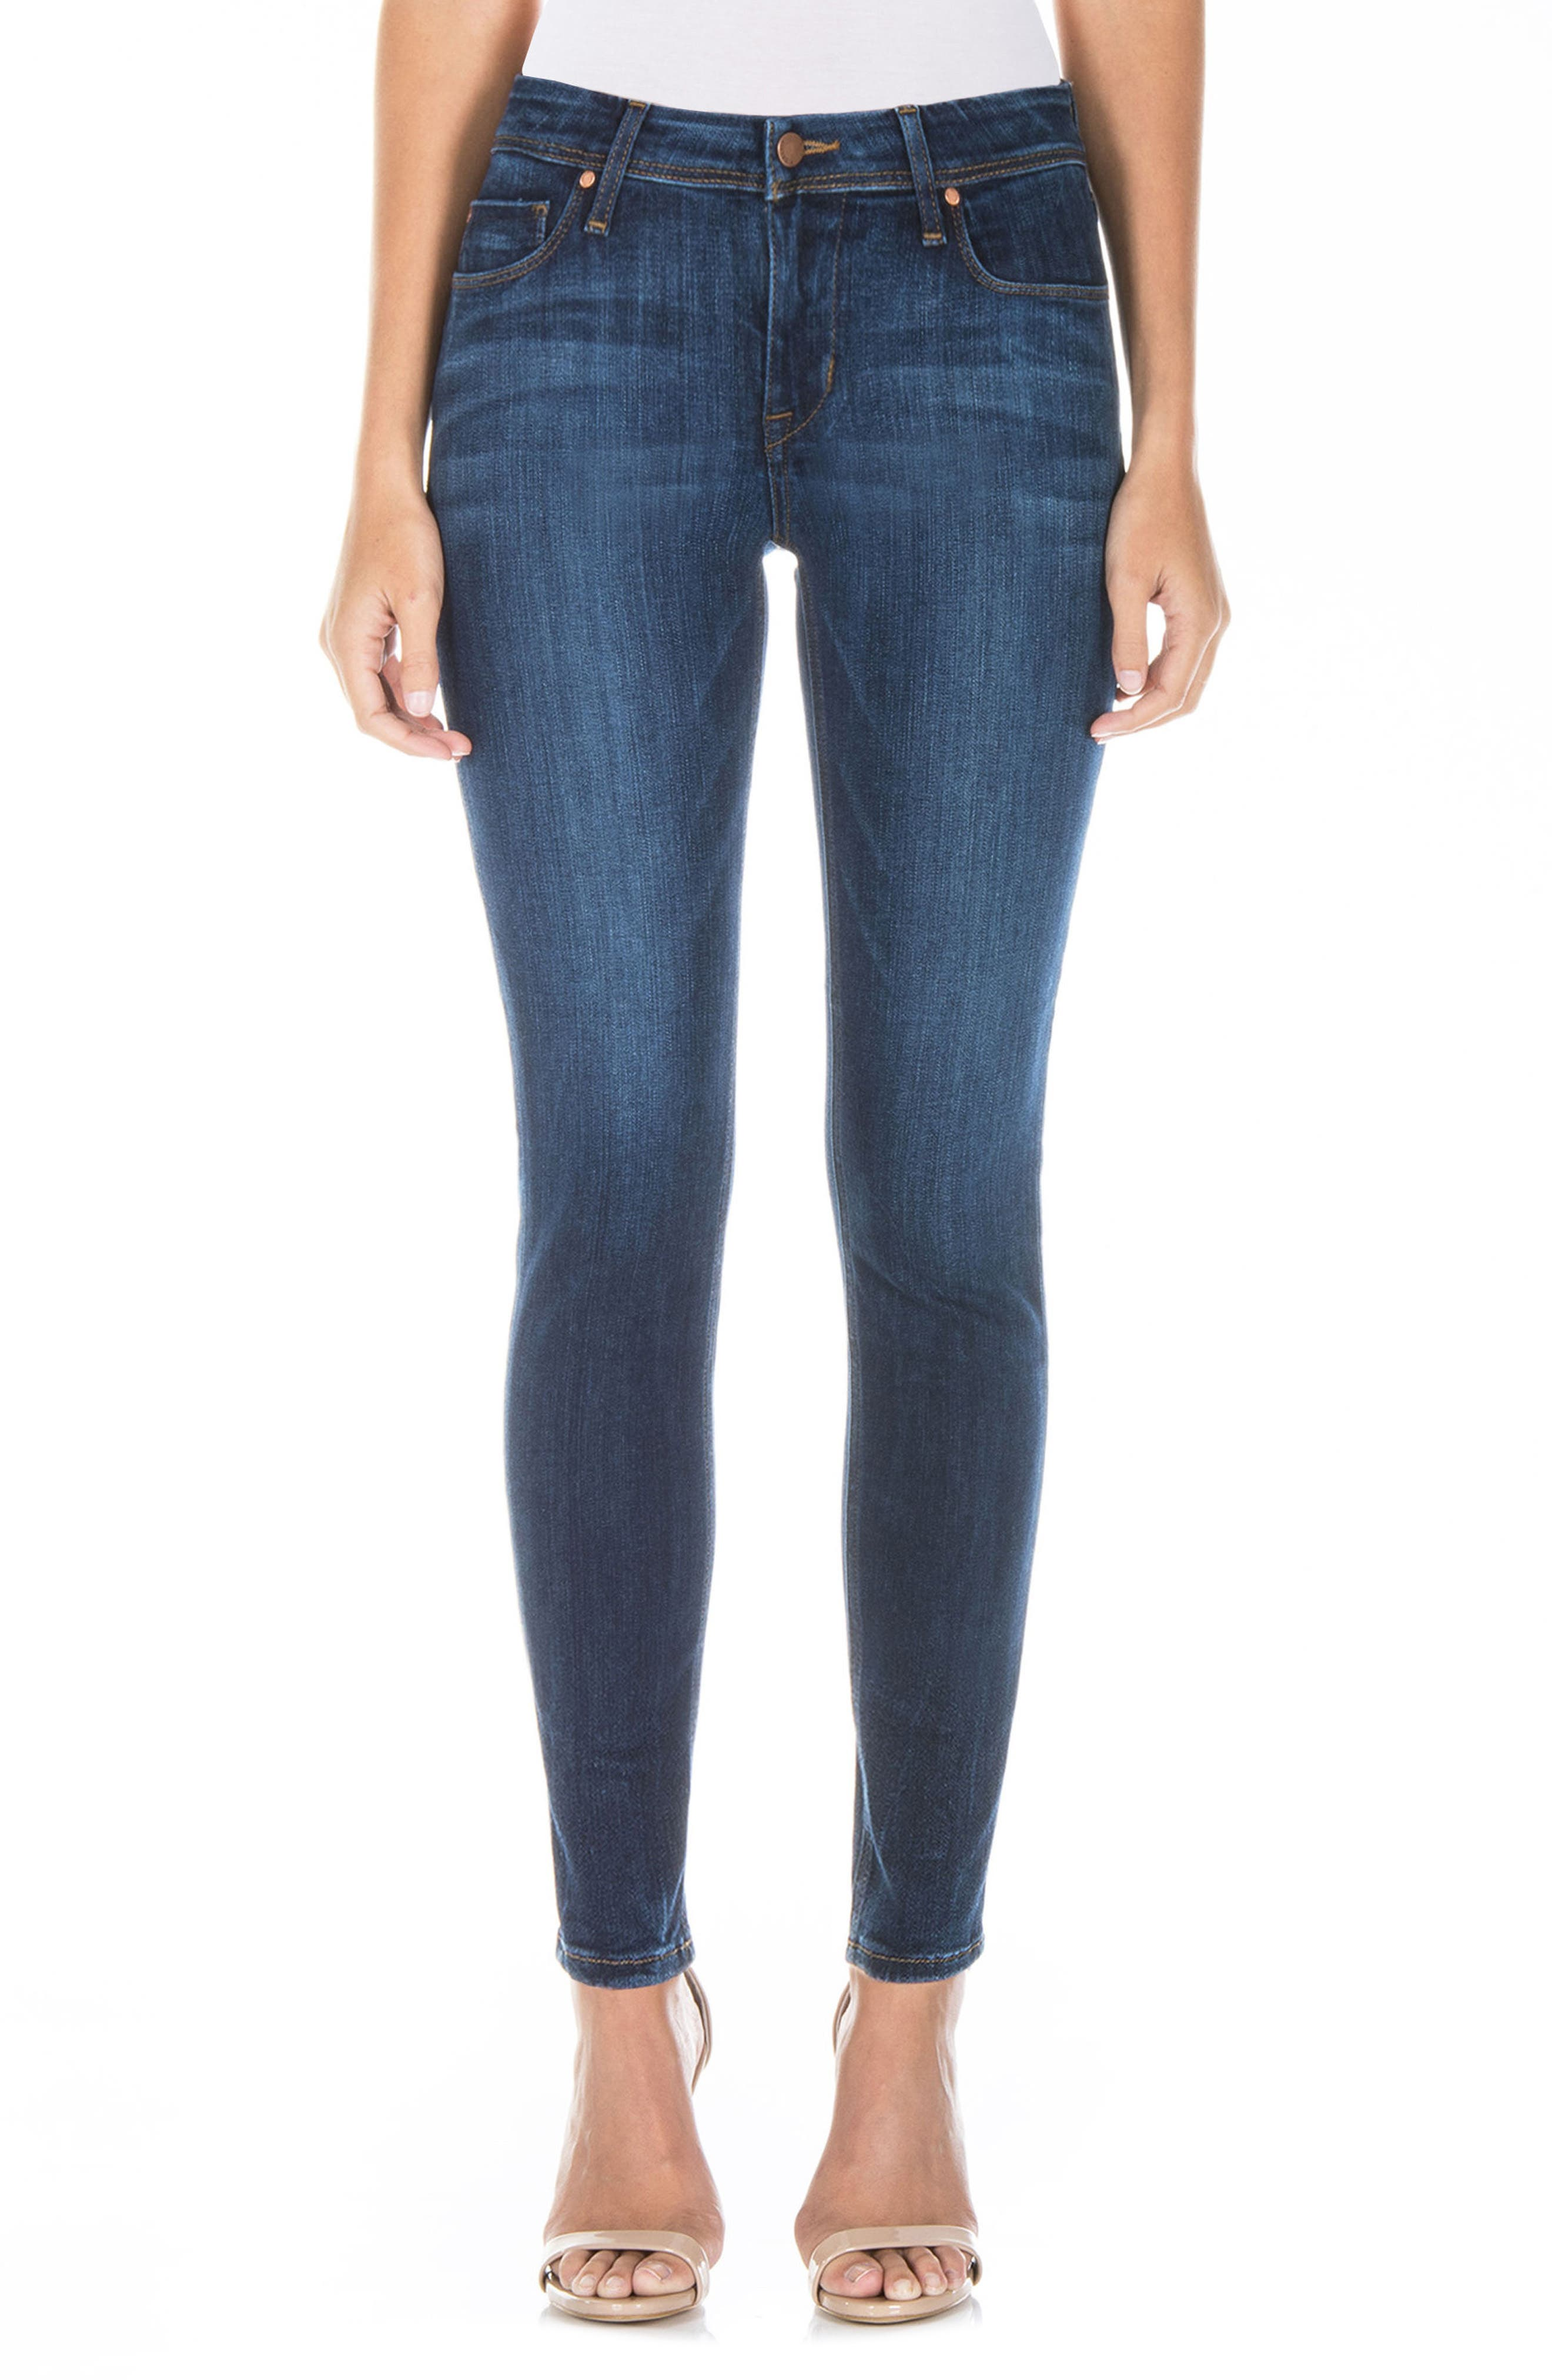 Gwen High Waist Skinny Jeans,                         Main,                         color, Falcon Blue